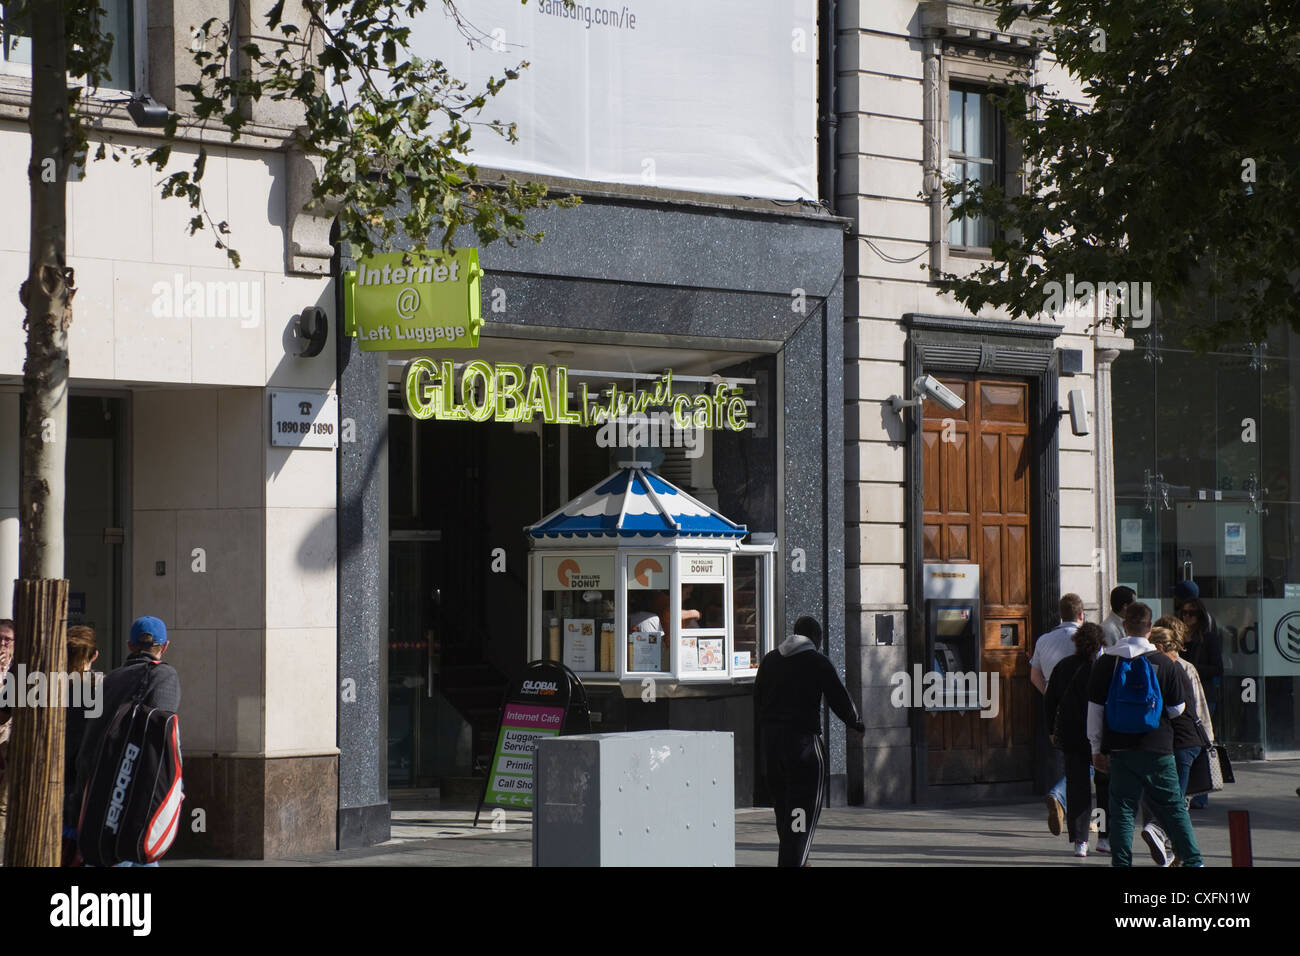 Dublin City Eire Global Internet cafe in main street of capital city - Stock Image